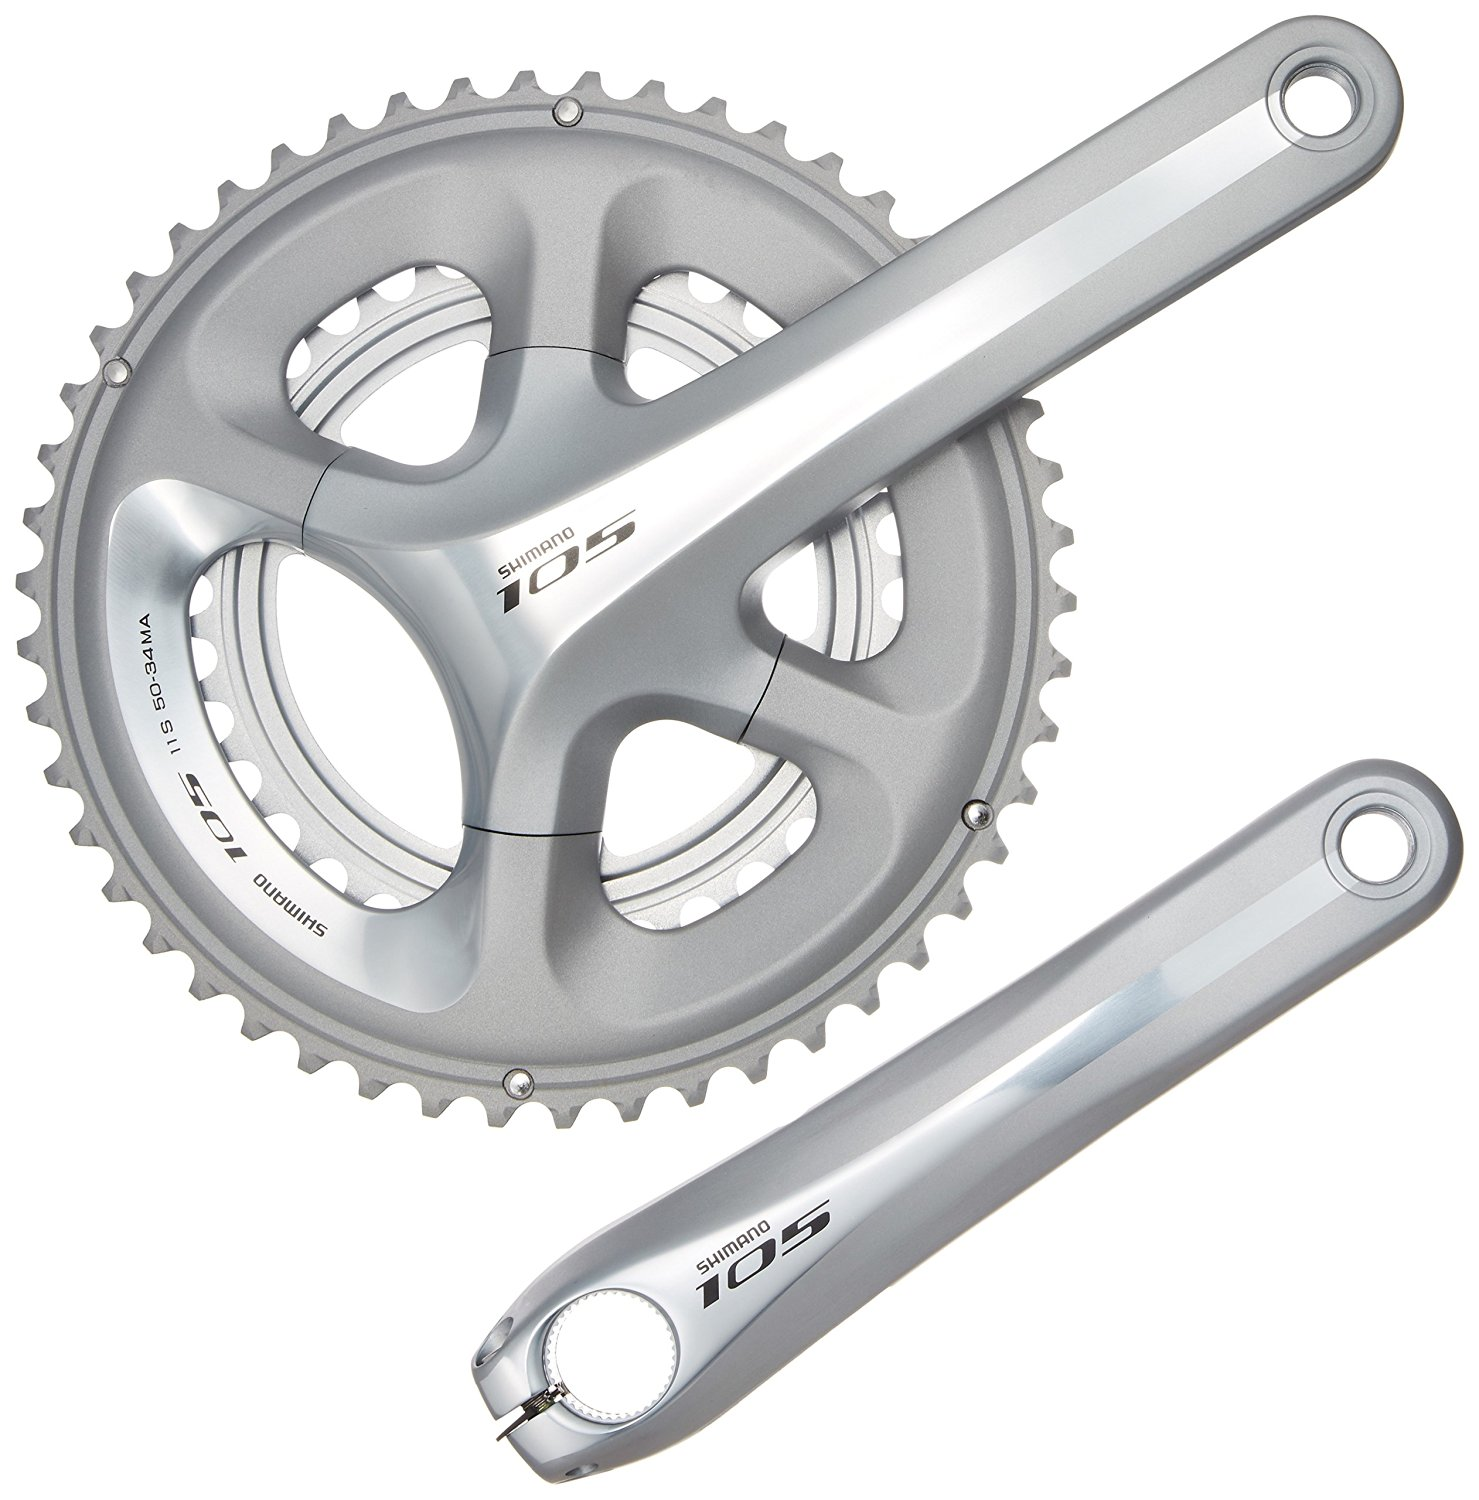 Buy 2015 Shimano 105 5800 Chainset Silver 11 Speed In Cheap Price On Groupset New Box